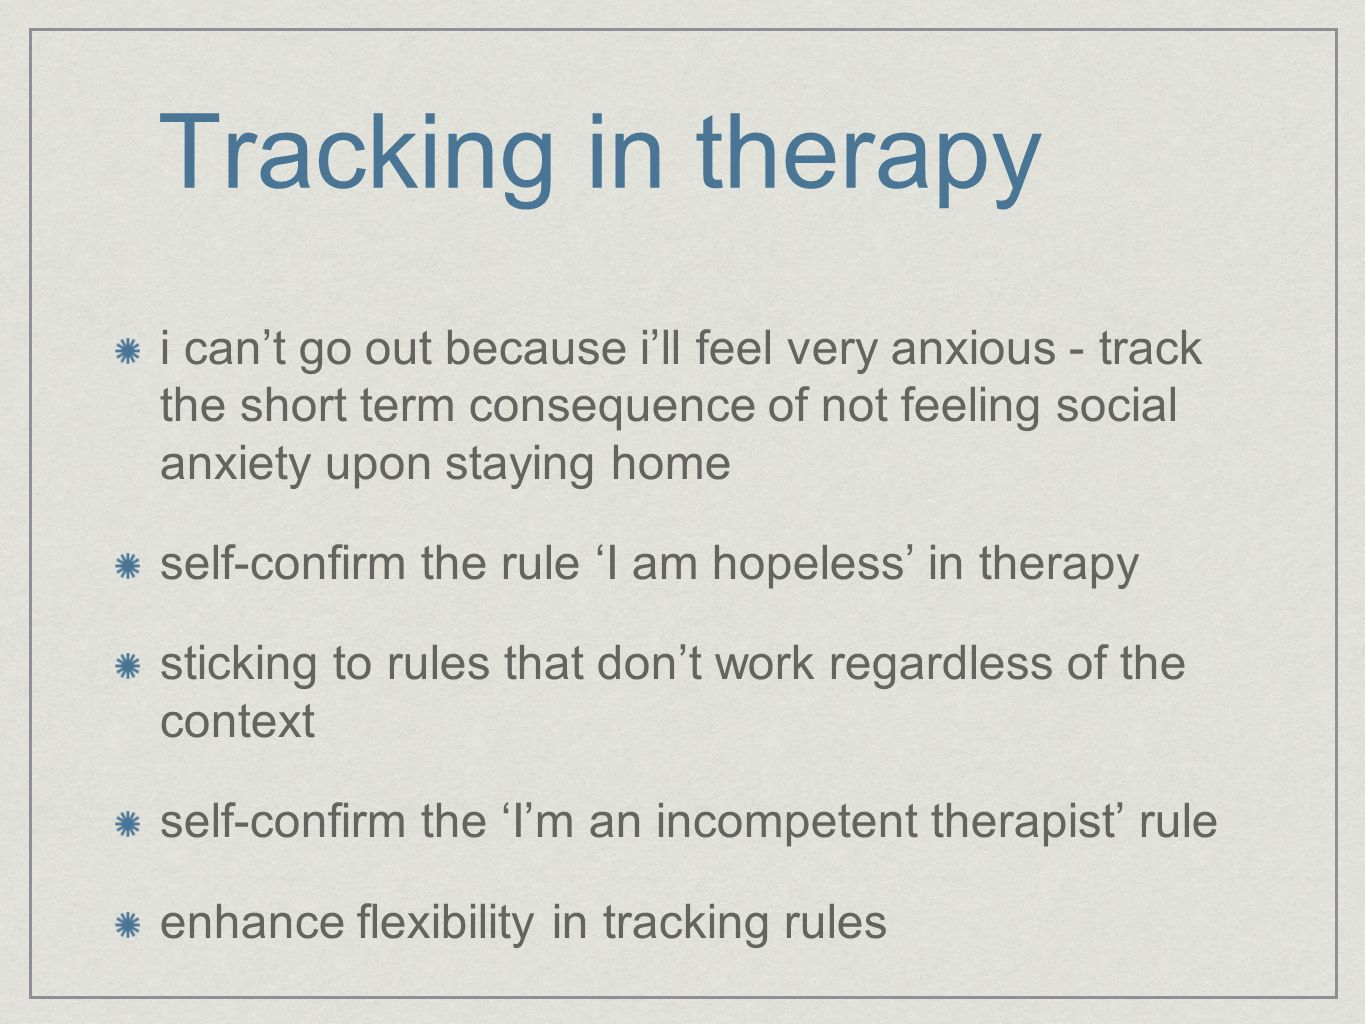 Tracking in therapy i can't go out because i'll feel very anxious - track the short term consequence of not feeling social anxiety upon staying home self-confirm the rule 'I am hopeless' in therapy sticking to rules that don't work regardless of the context self-confirm the 'I'm an incompetent therapist' rule enhance flexibility in tracking rules